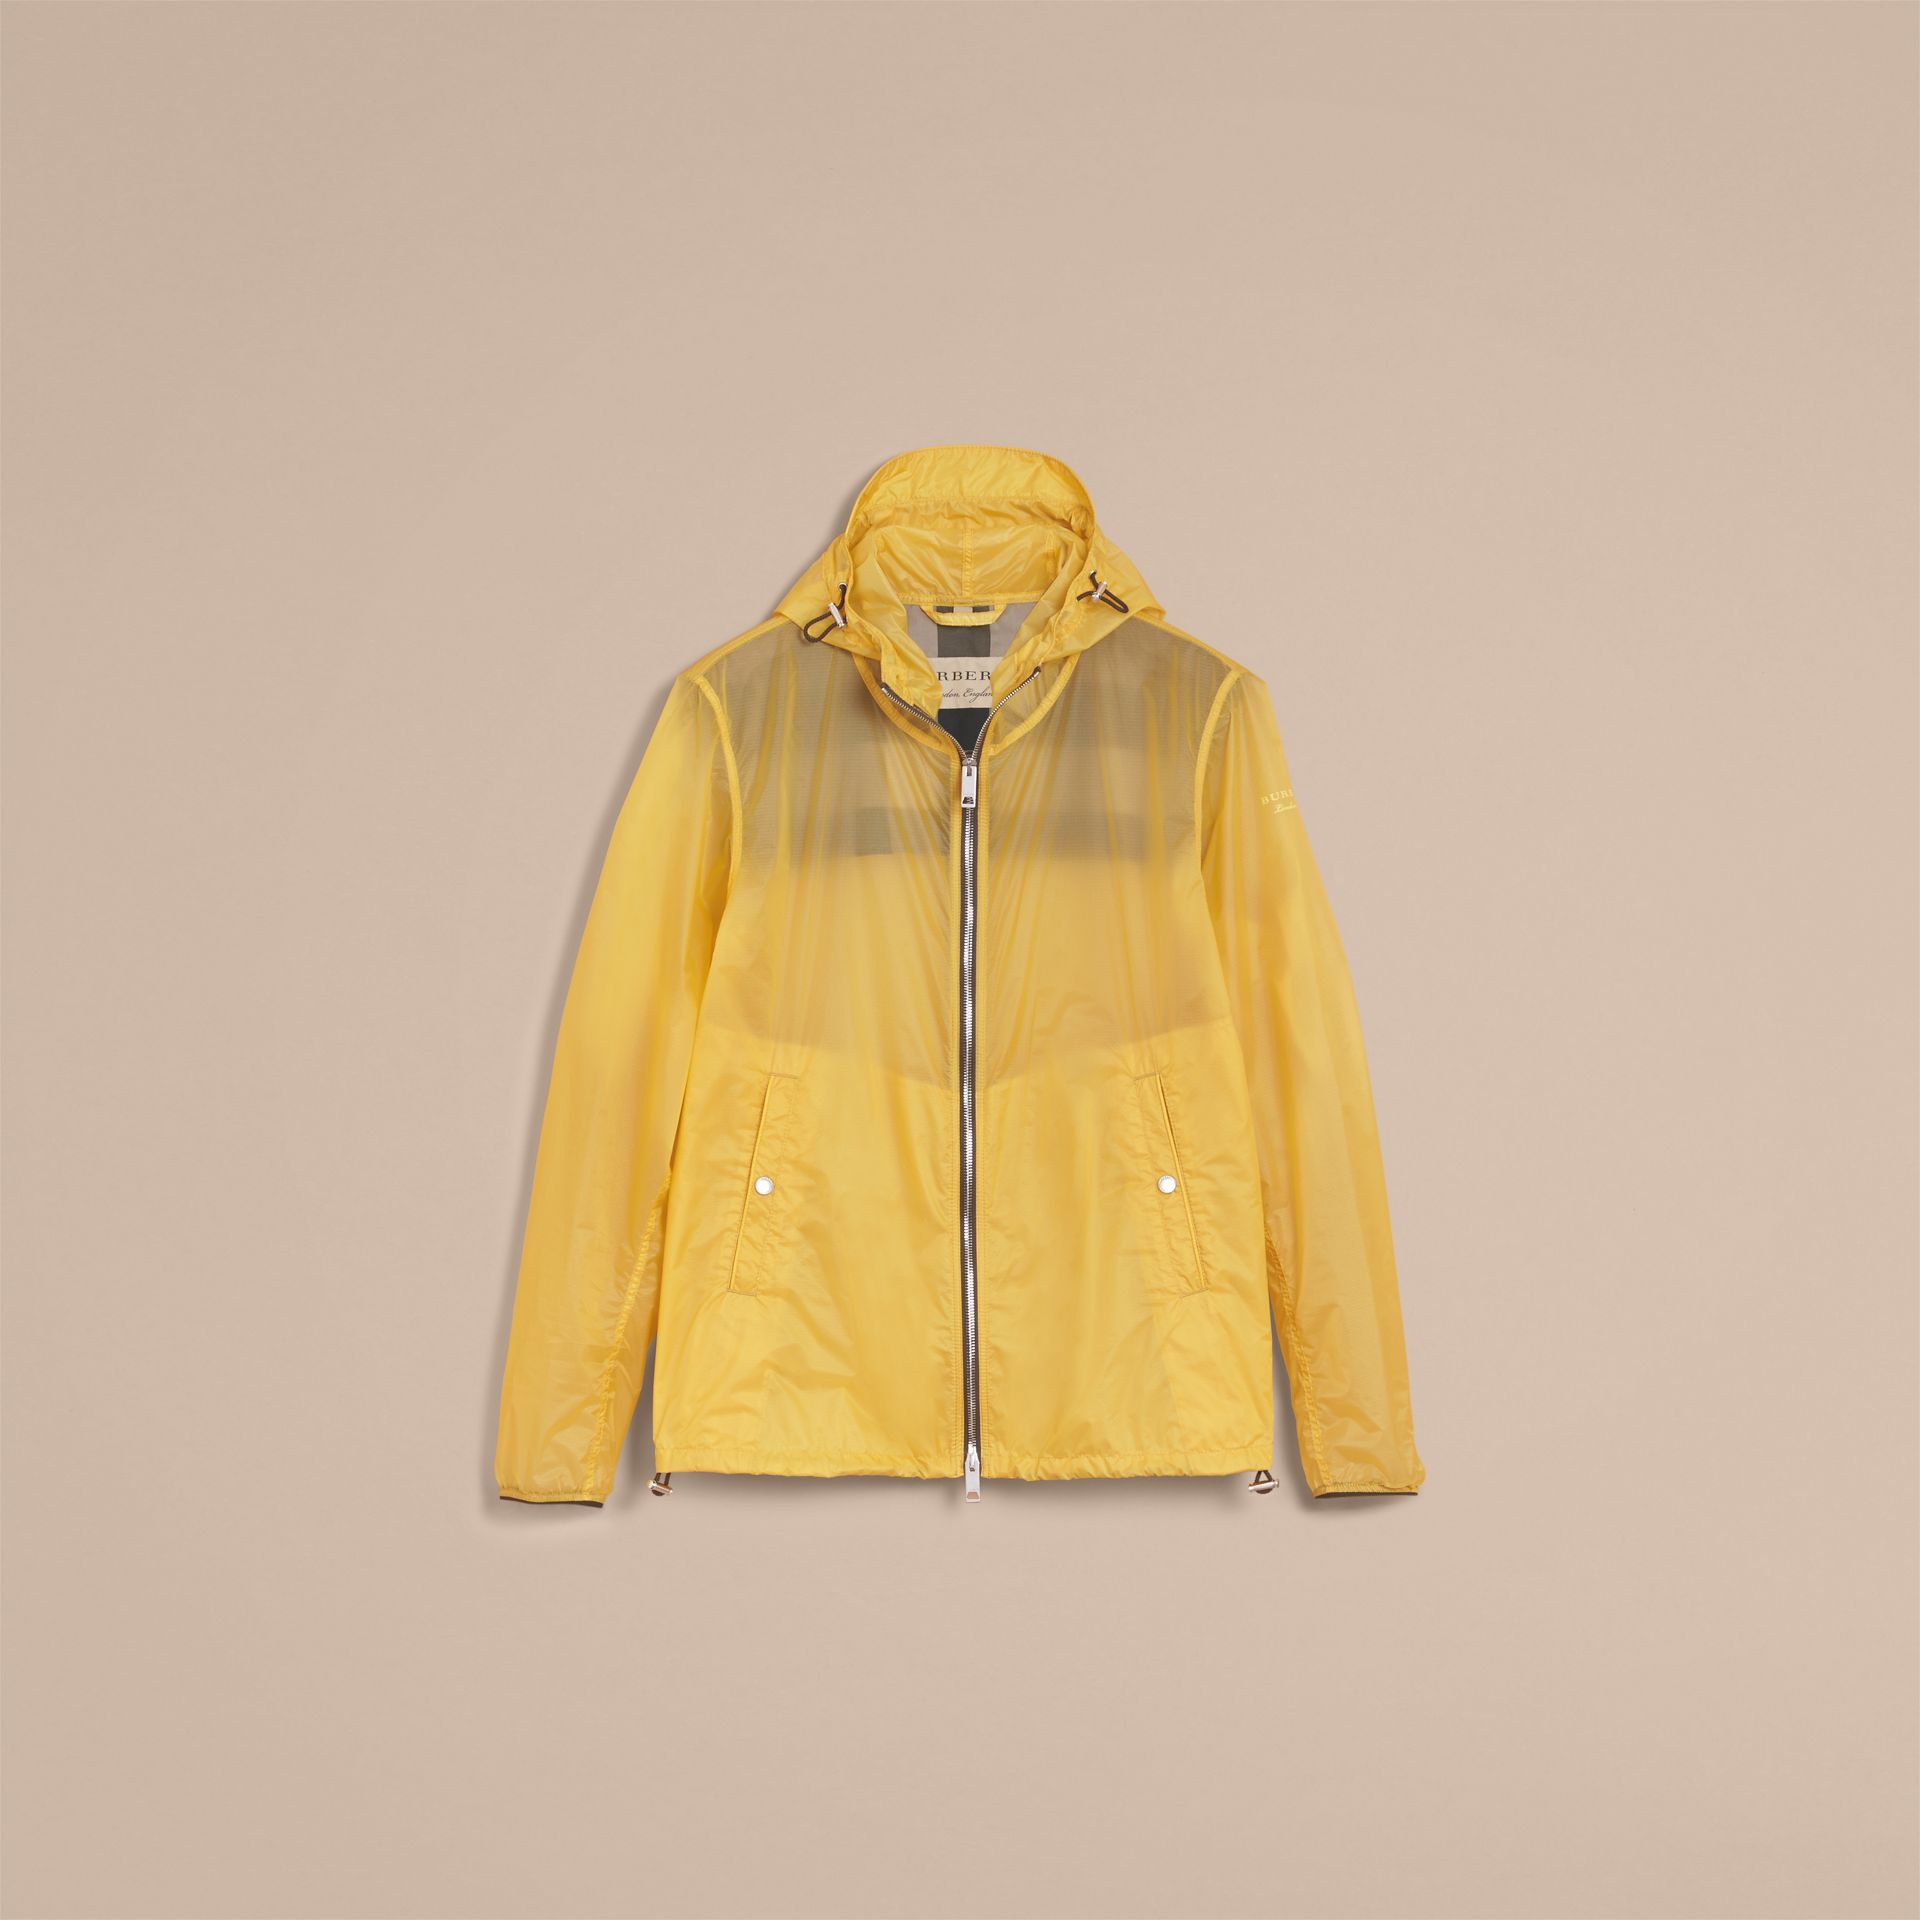 Hooded Super-lightweight Jacket in Pale Yellow - Men | Burberry - gallery image 4